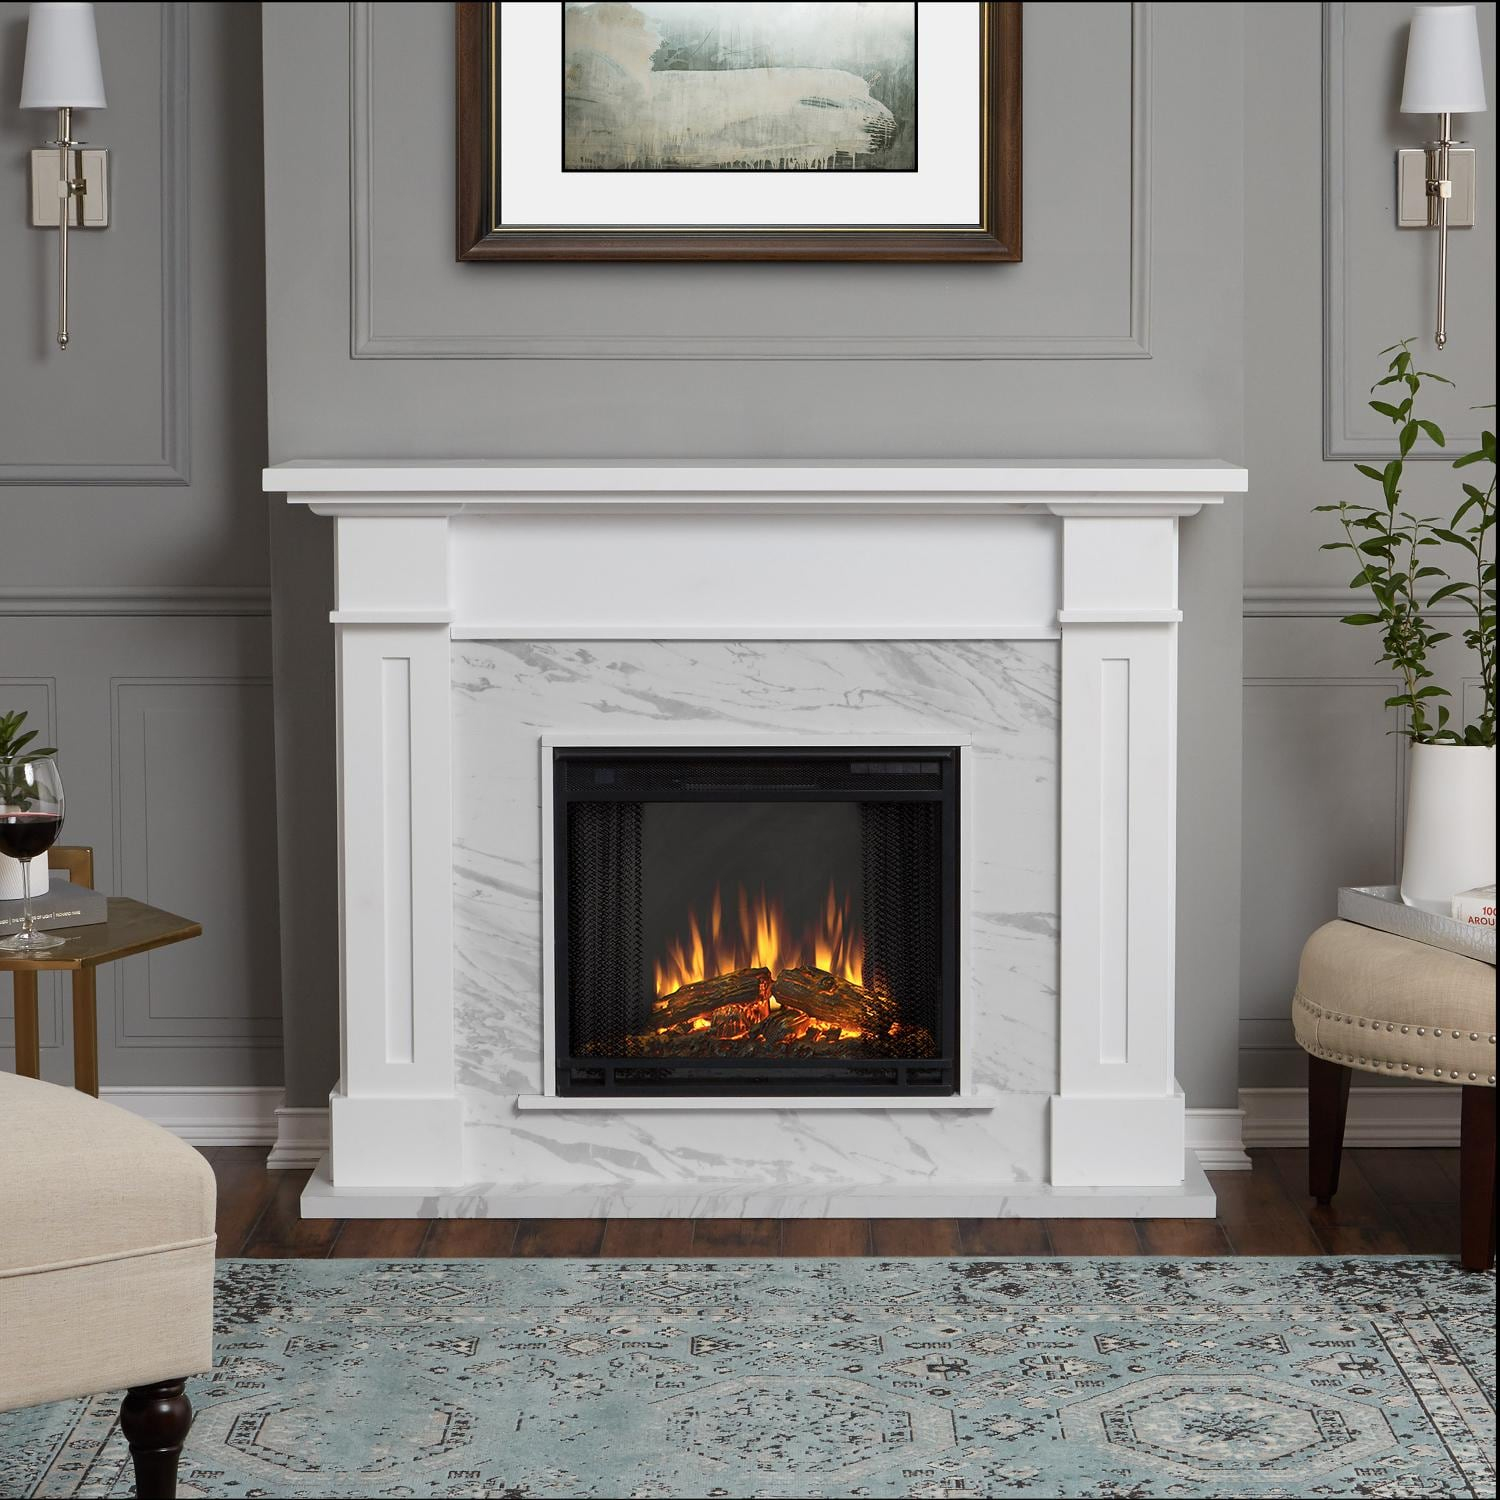 The Kipling Fireplace Mantel features clean lines and a textured slate firebox surround